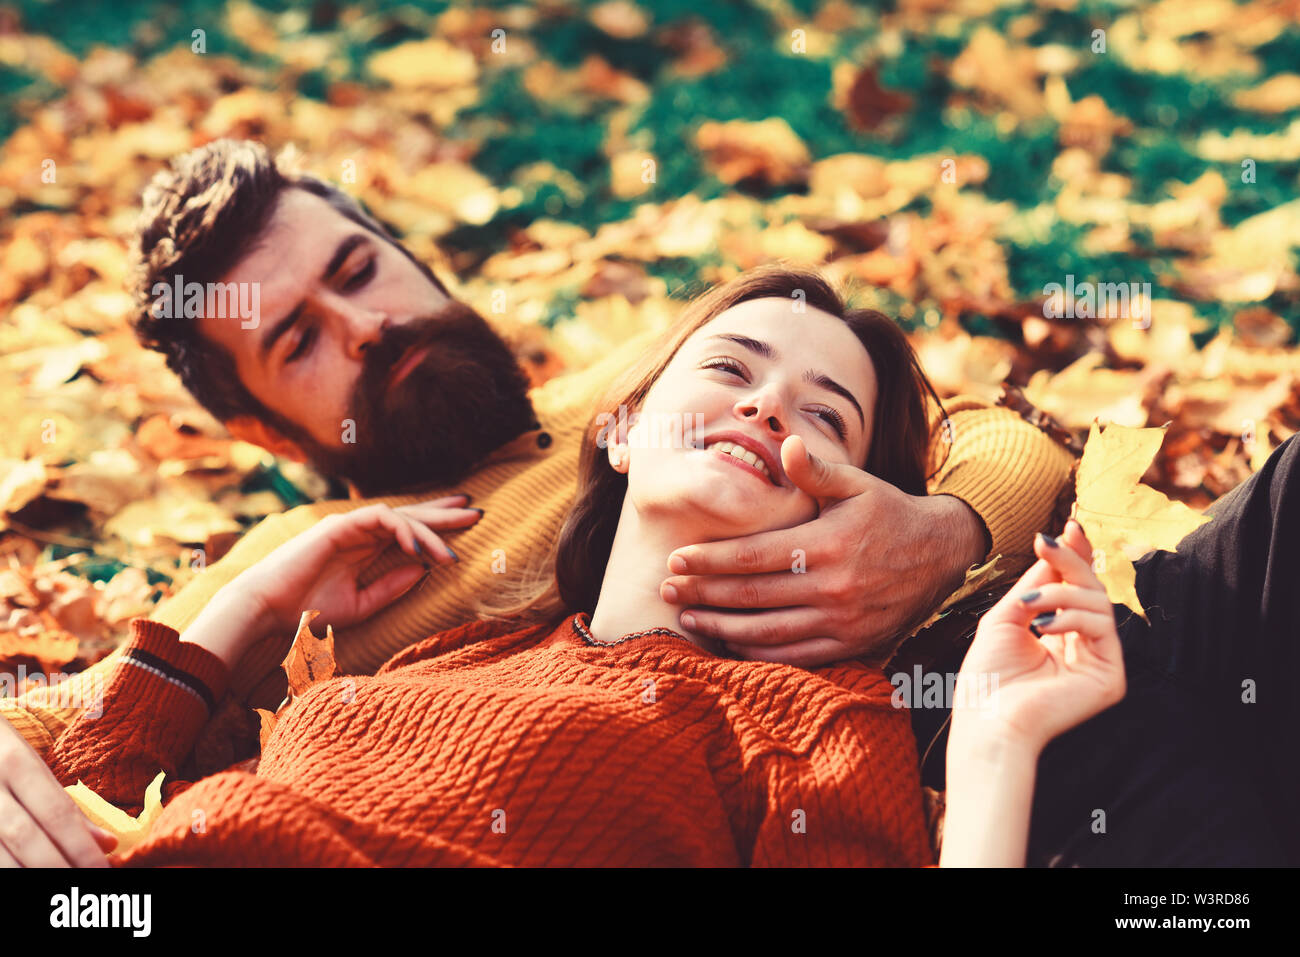 Man and woman with happy faces on grass and leaves background. Relationship and fall time concept. Girl and bearded guy or happy lovers on a date cudd - Stock Image